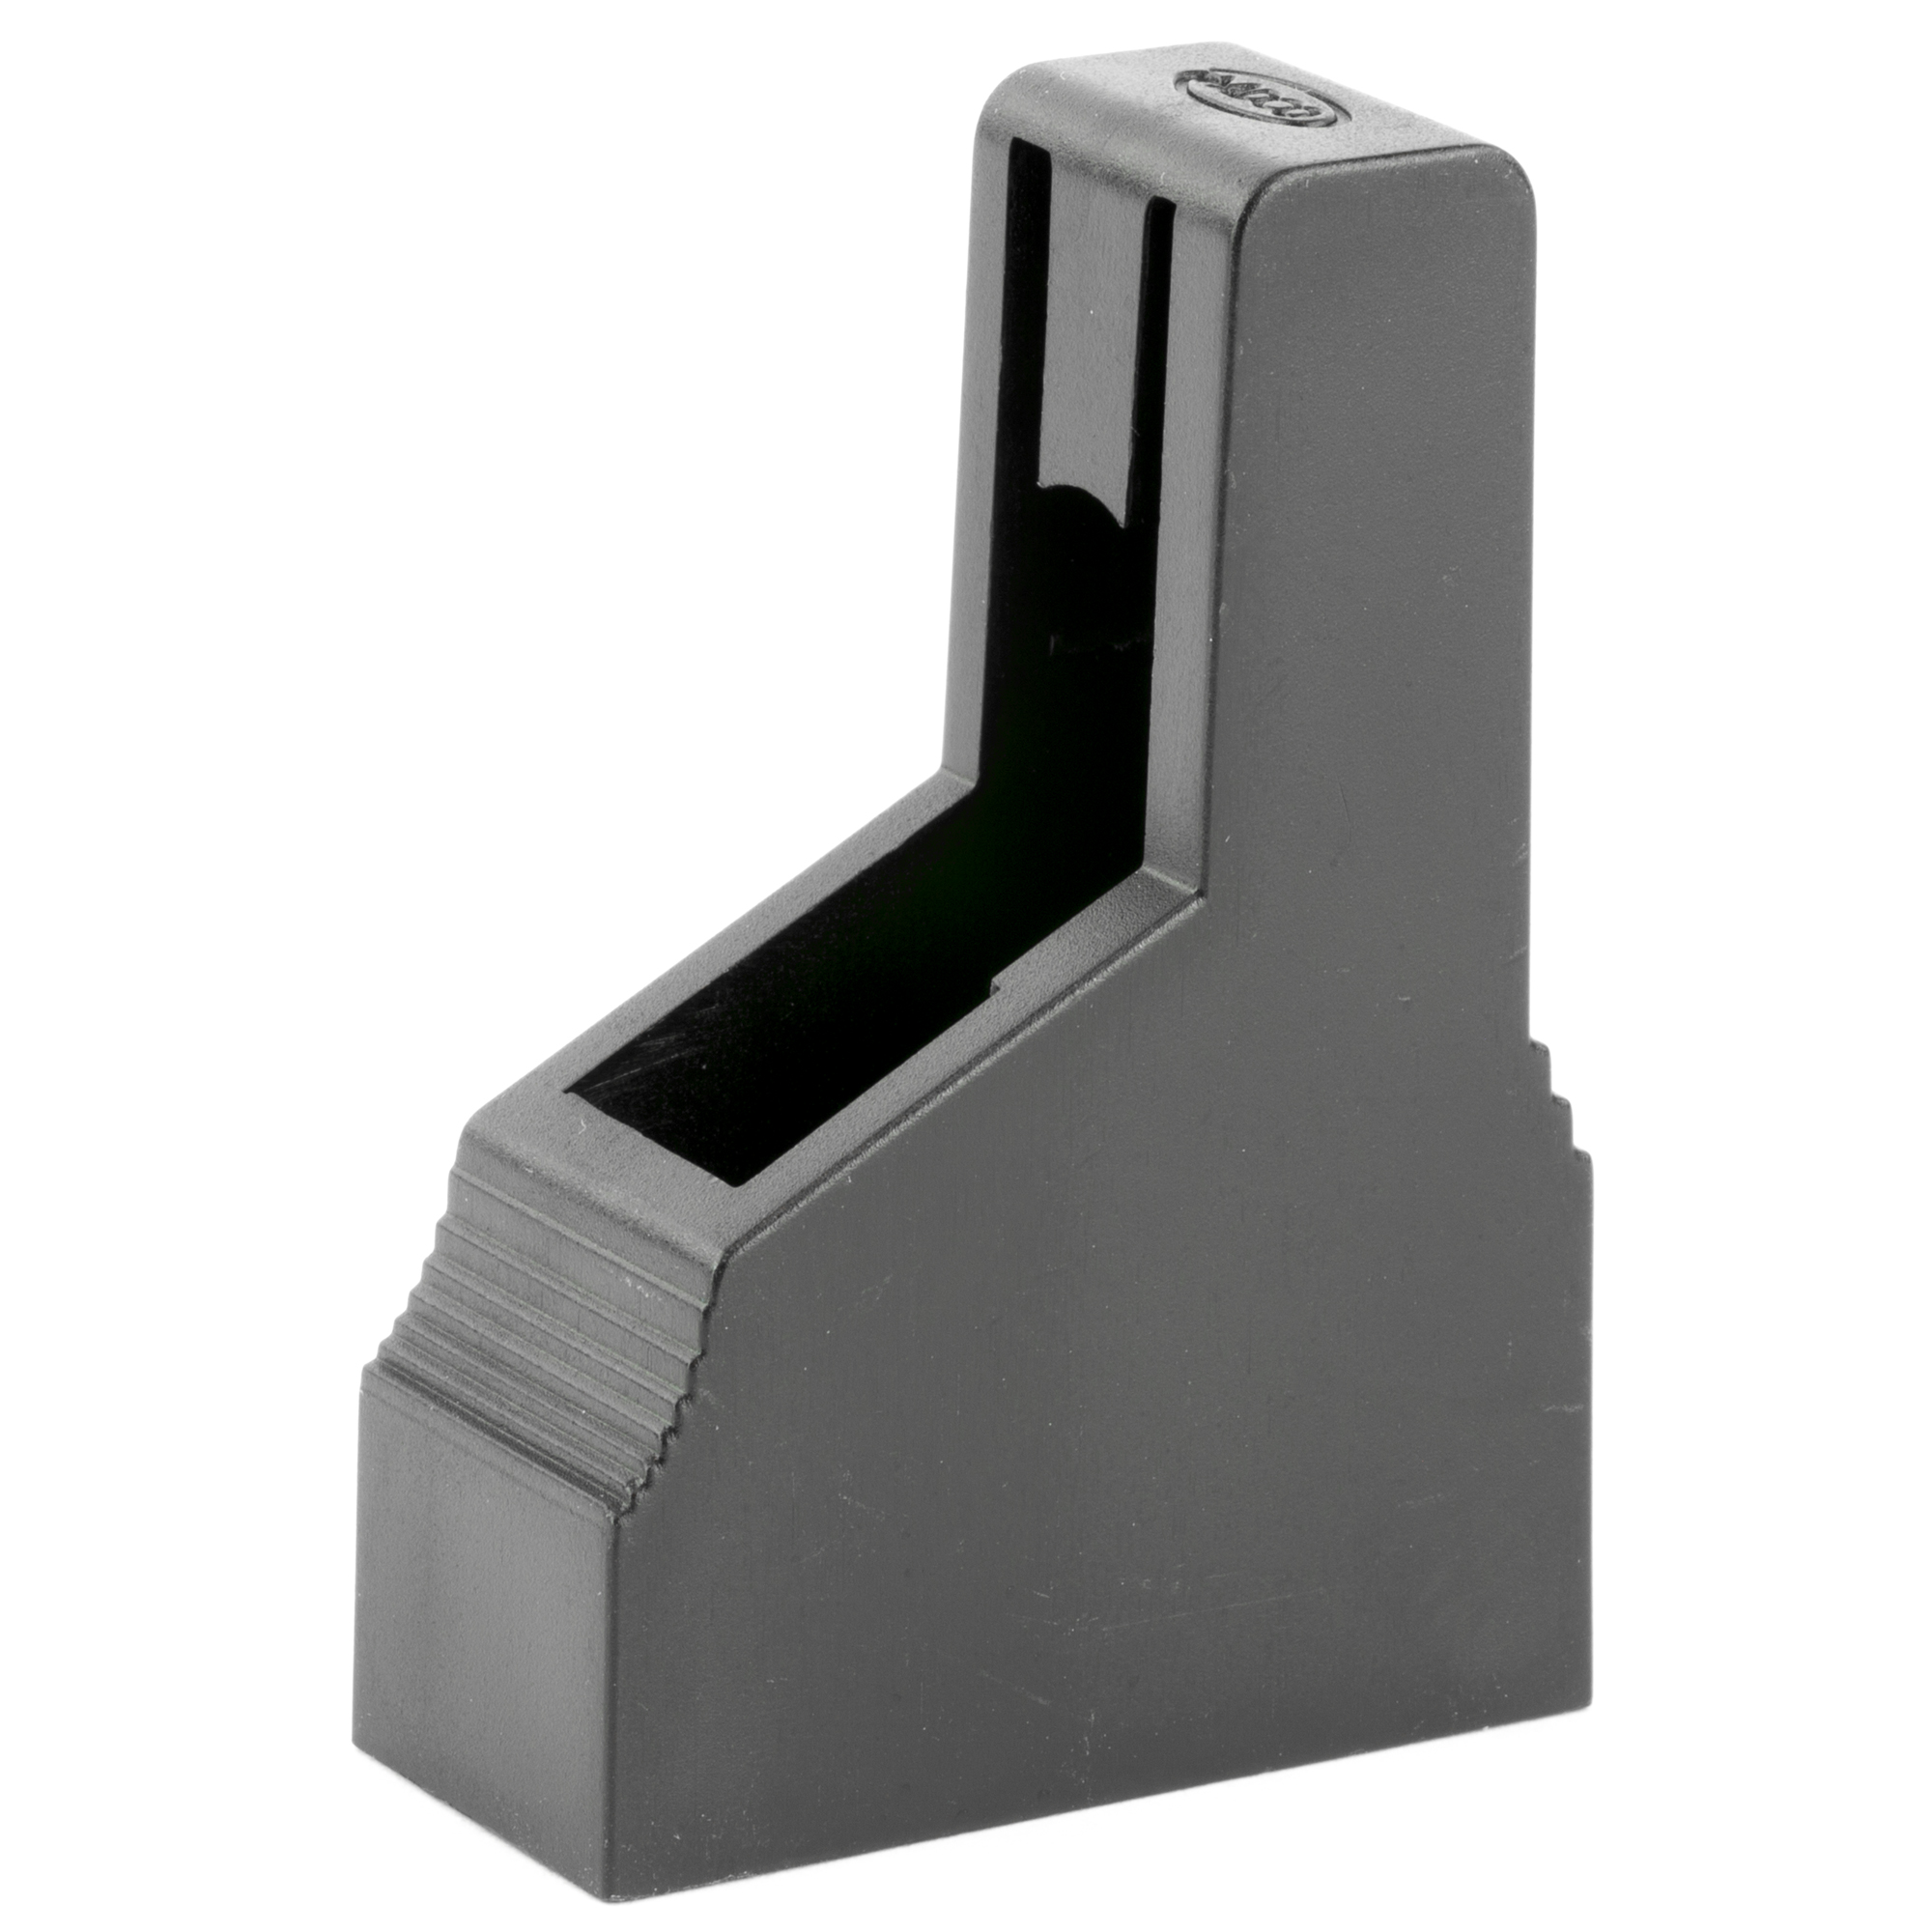 Adco Super Thumb Loader Sngl Stk 380